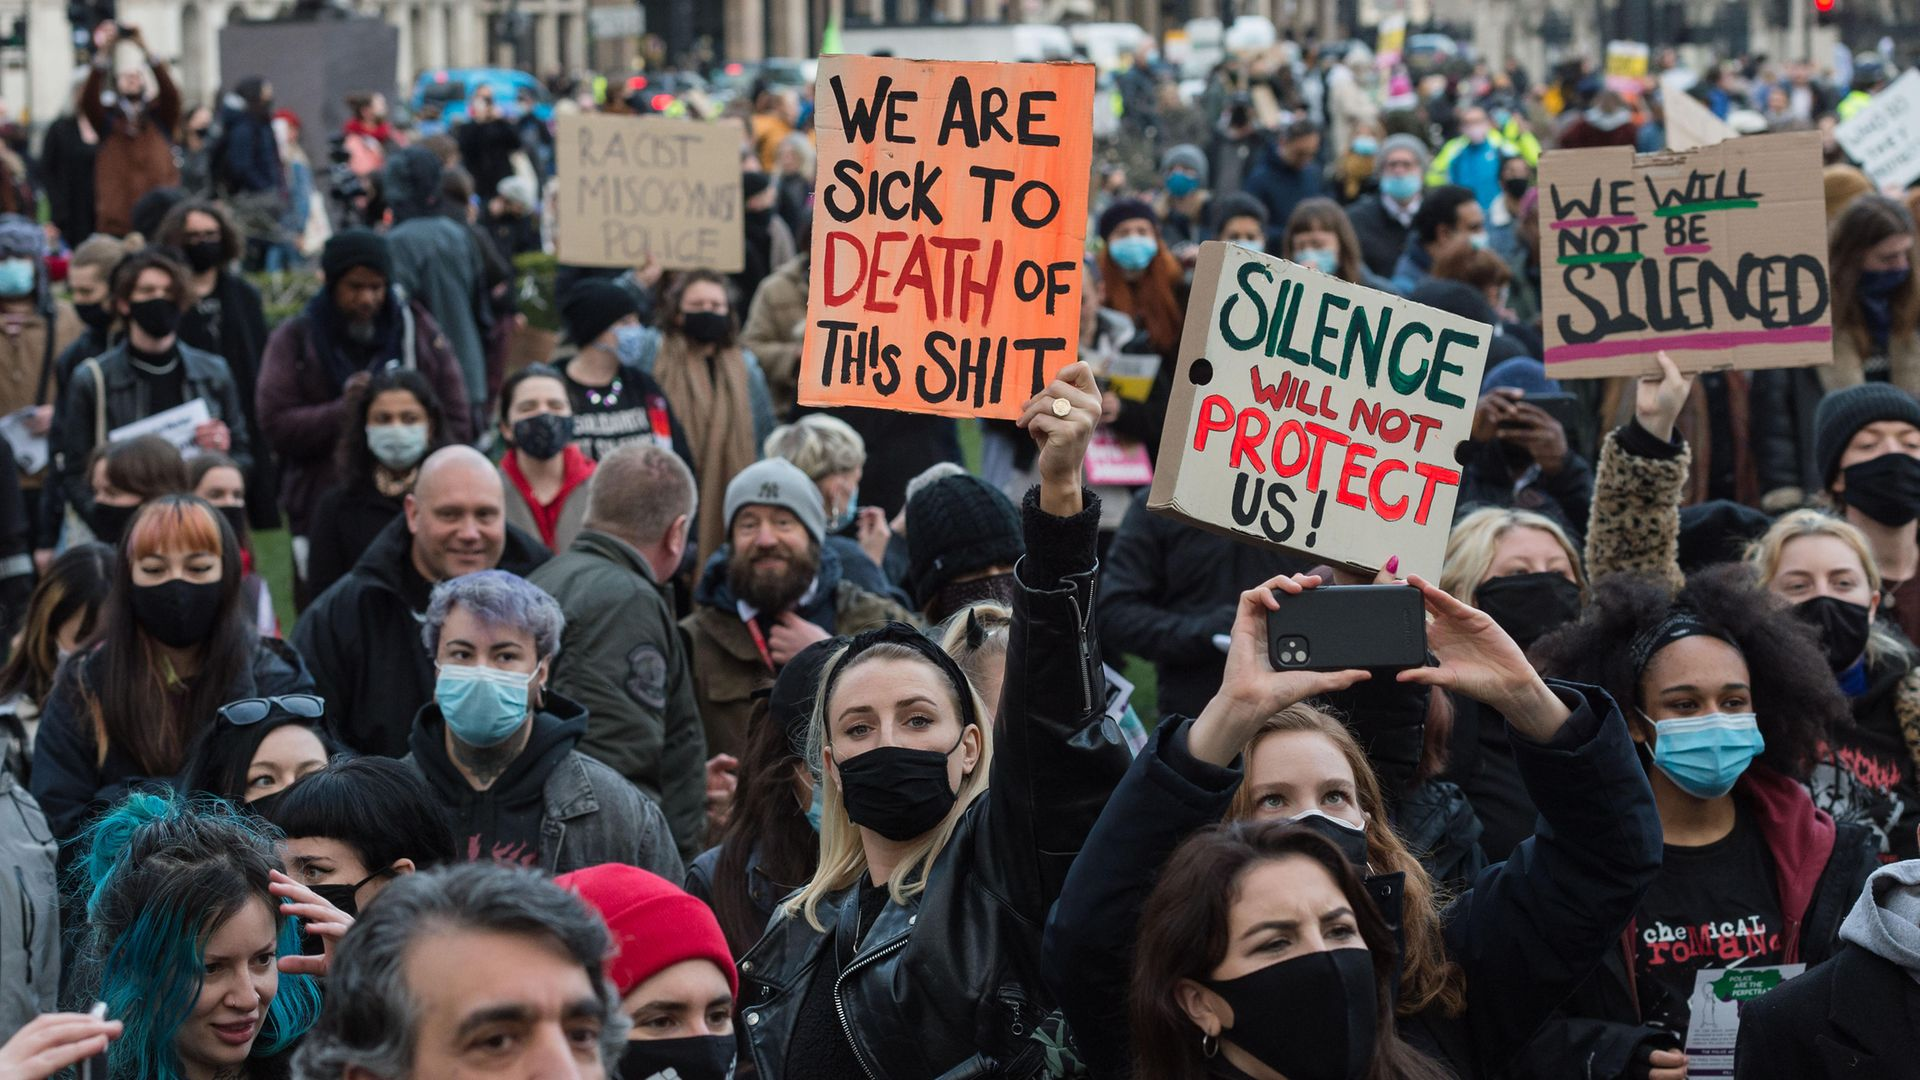 Protesters demonstrate in Parliament Square against governments proposed Police, Crime and Sentencing Bill - Credit: Barcroft Media via Getty Images